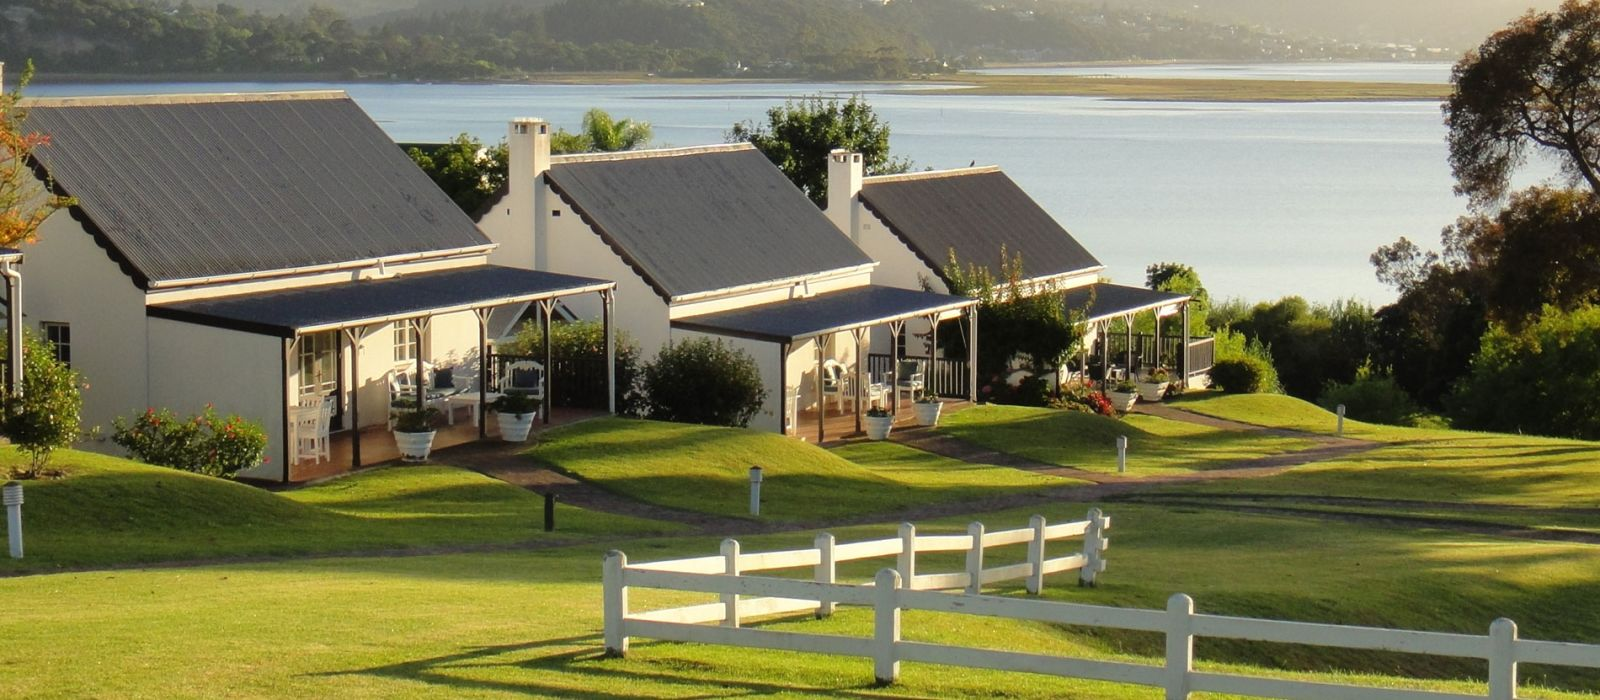 Hotel Belvidere Manor South Africa